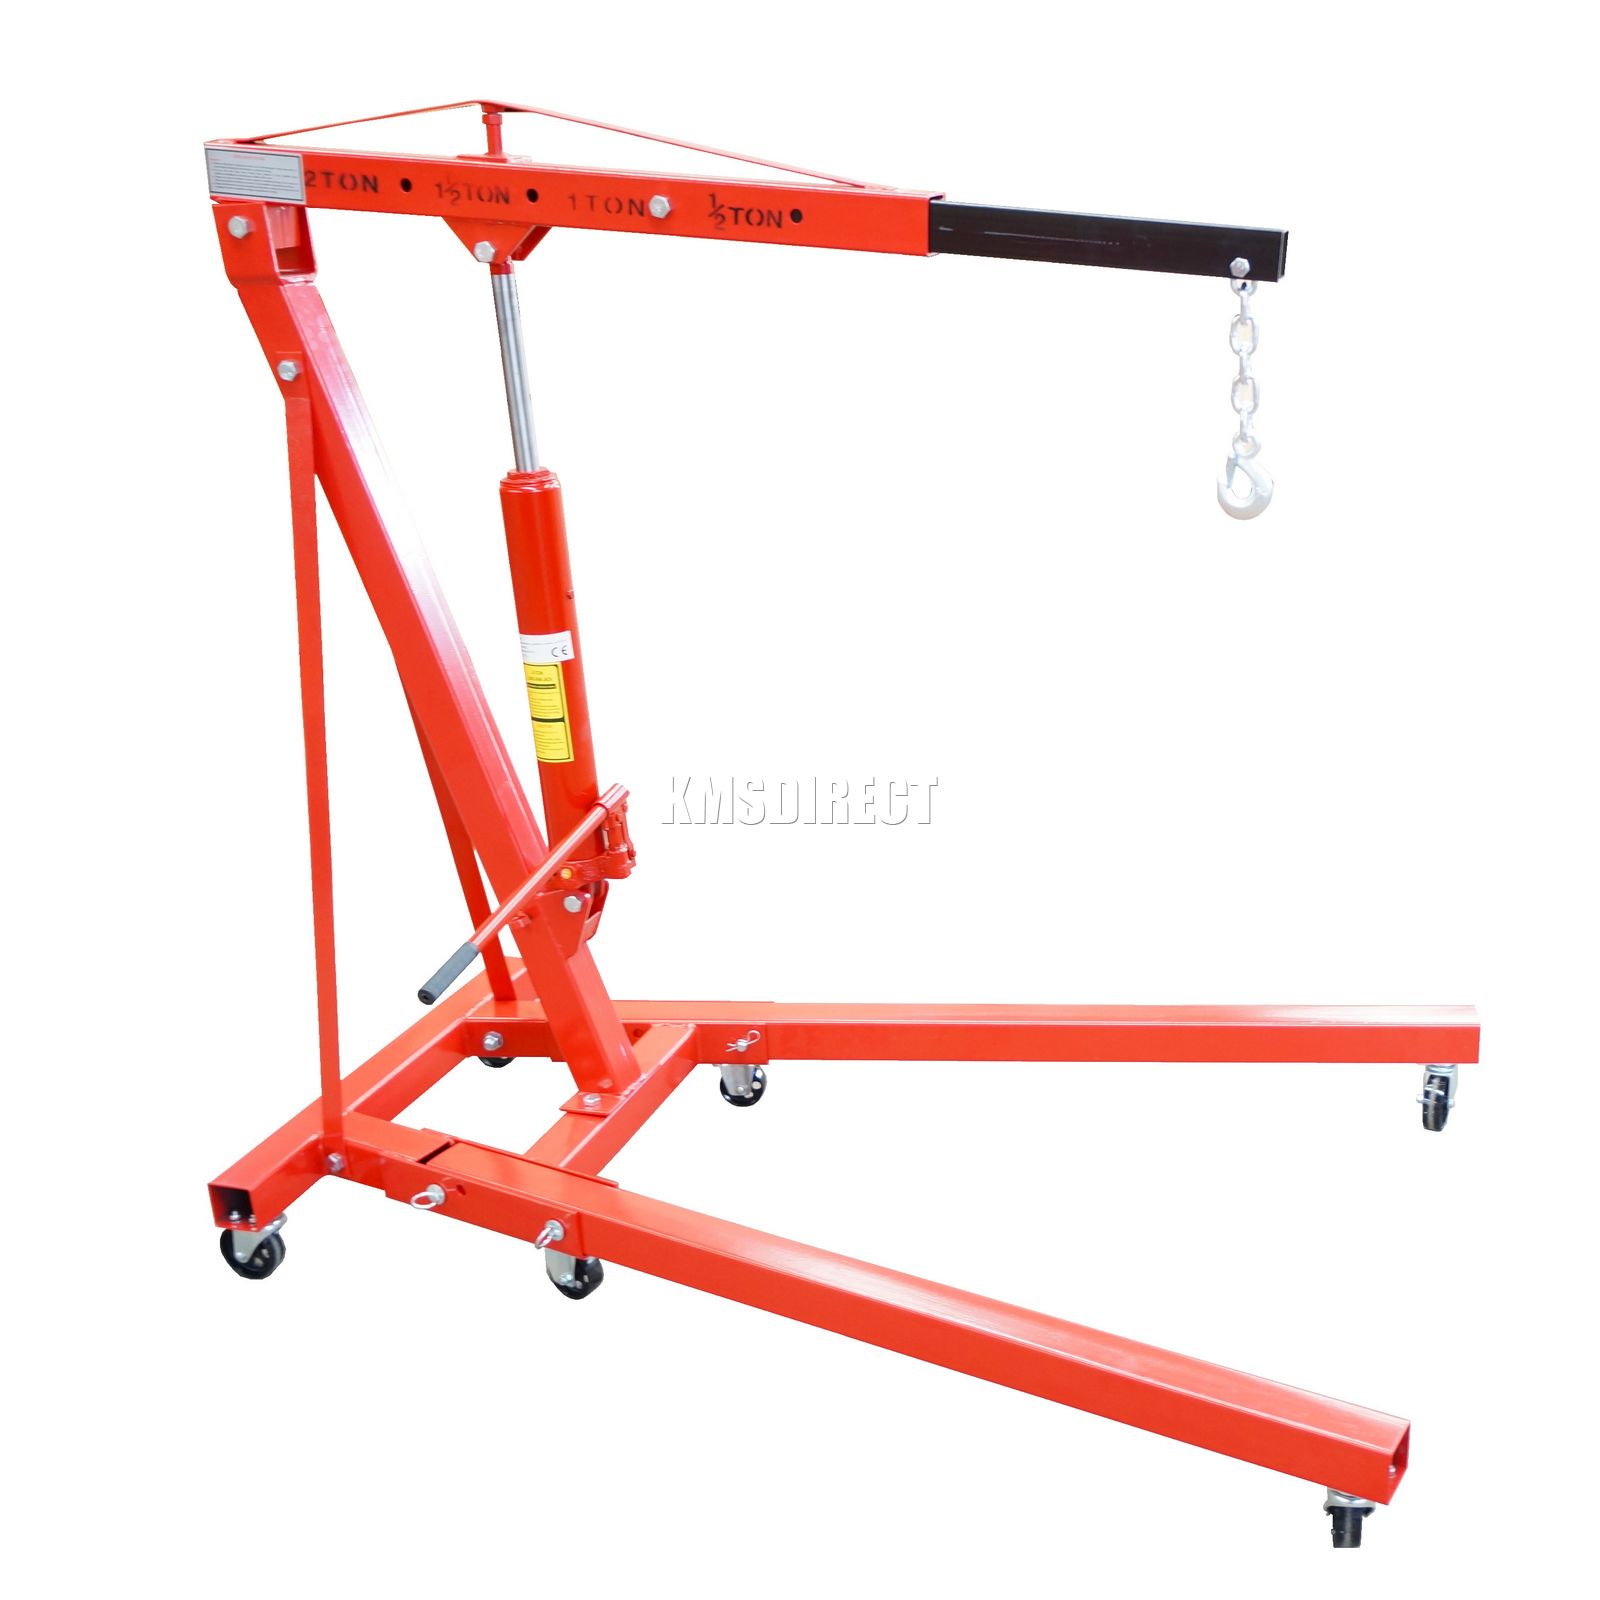 2 Ton Tonne Hydraulic Folding Engine Crane Stand Hoist lift Jack With Wheels New